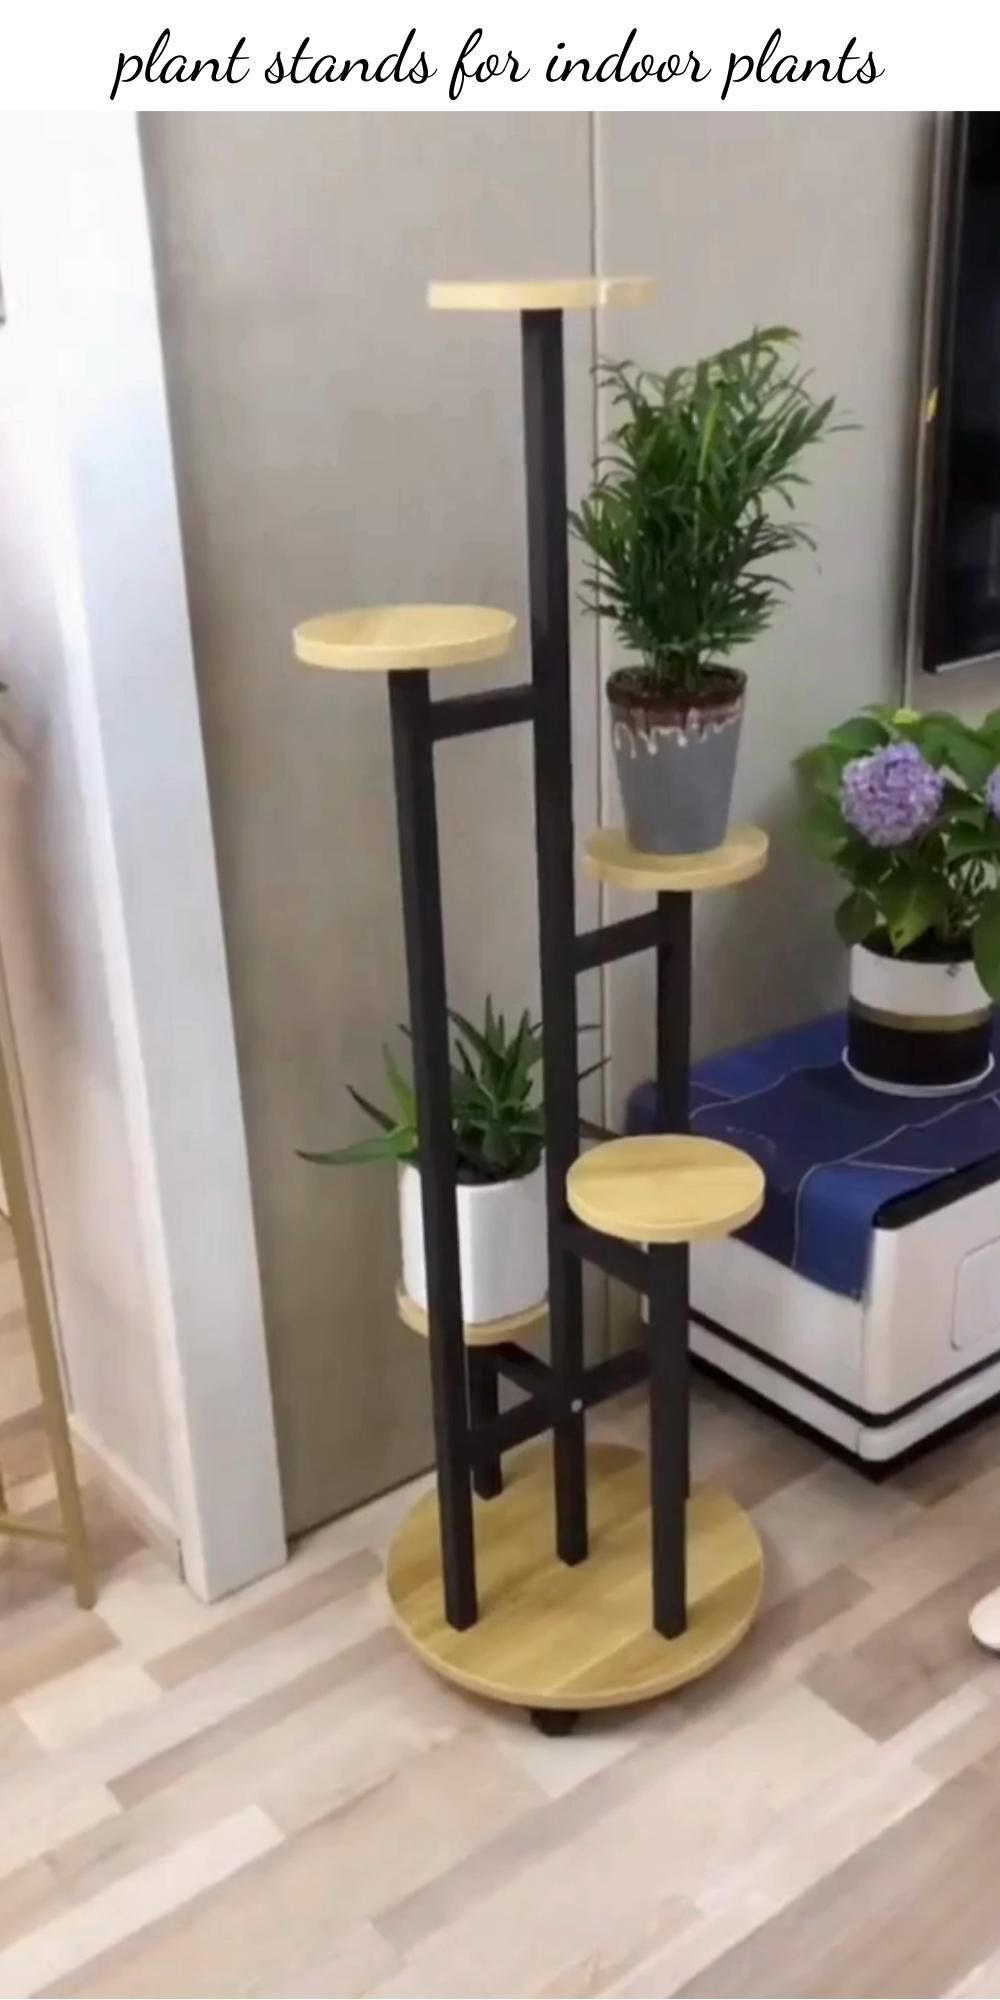 Plant stands for indoor plants